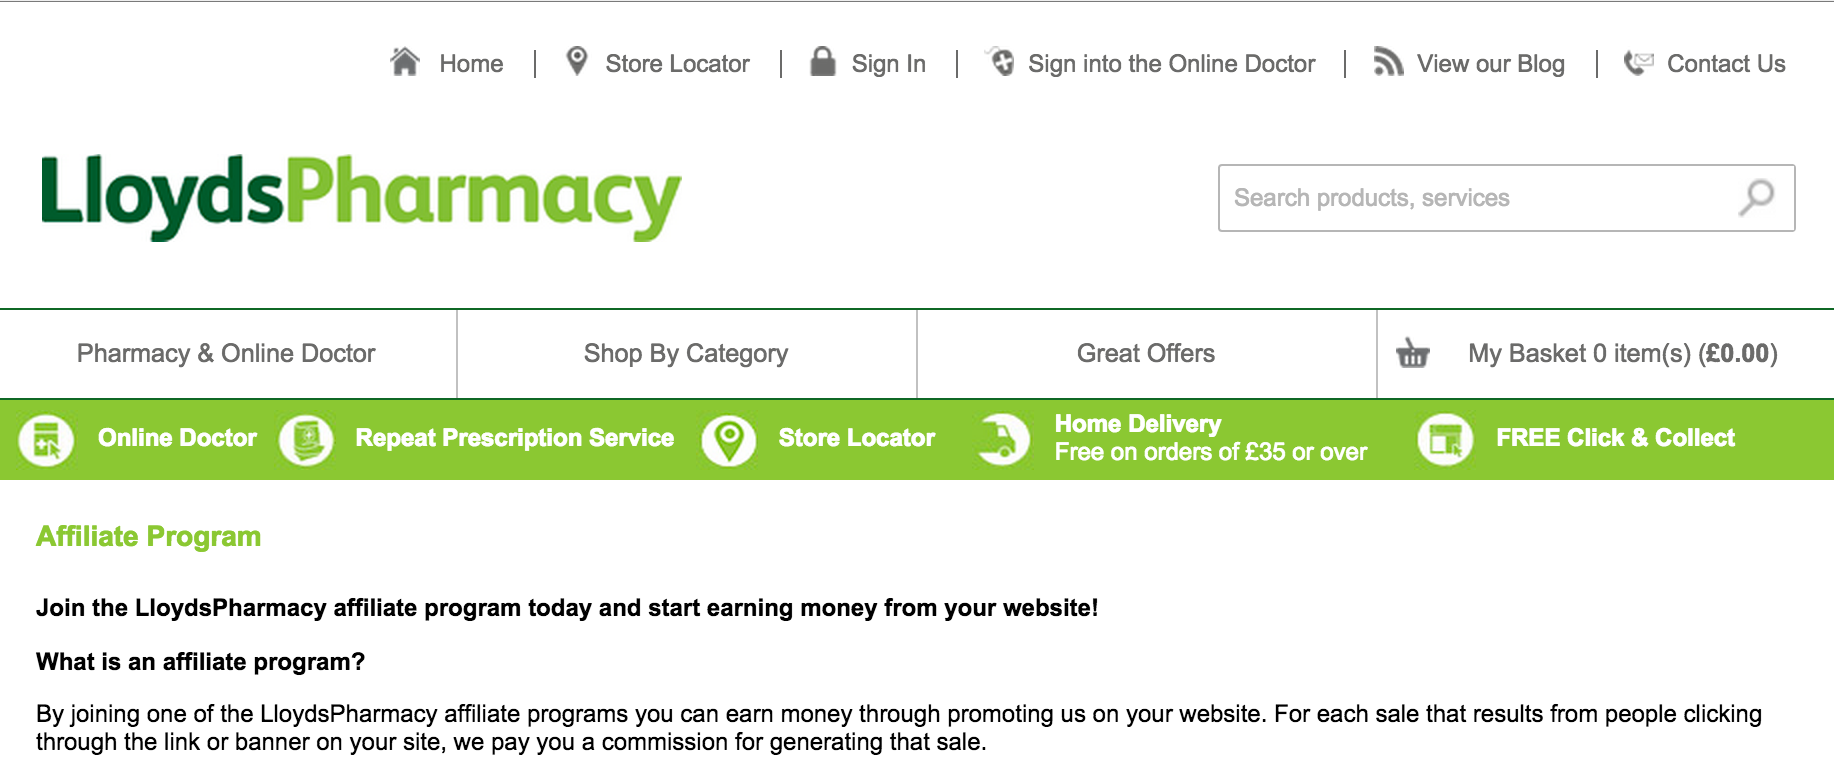 Lloyds Pharmacy - Pharmacy Affiliate Programs